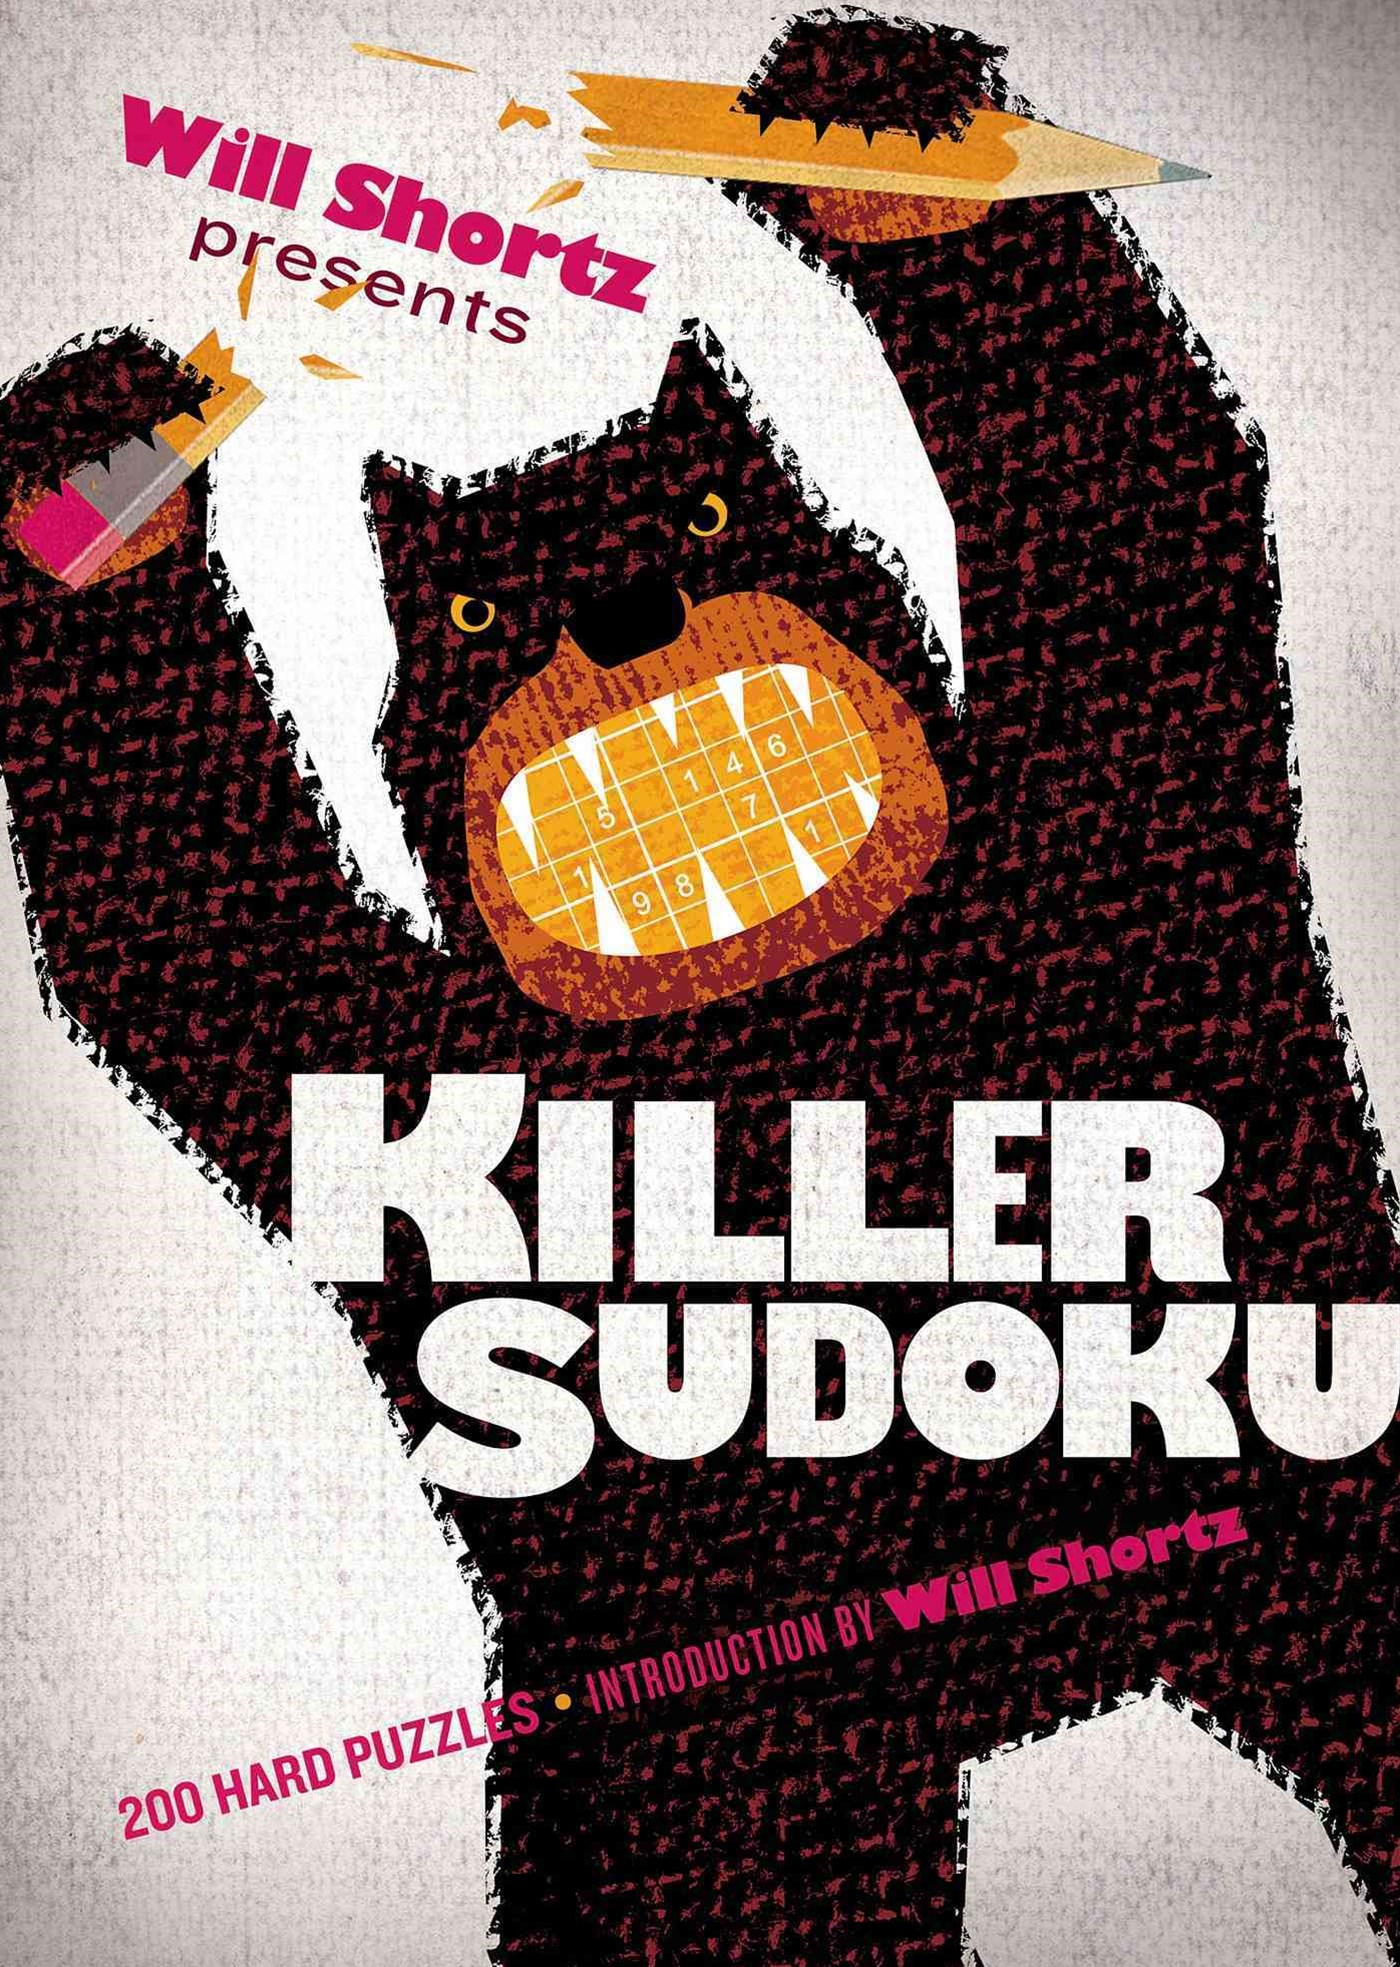 Will Shortz Presents Killer Sudoku